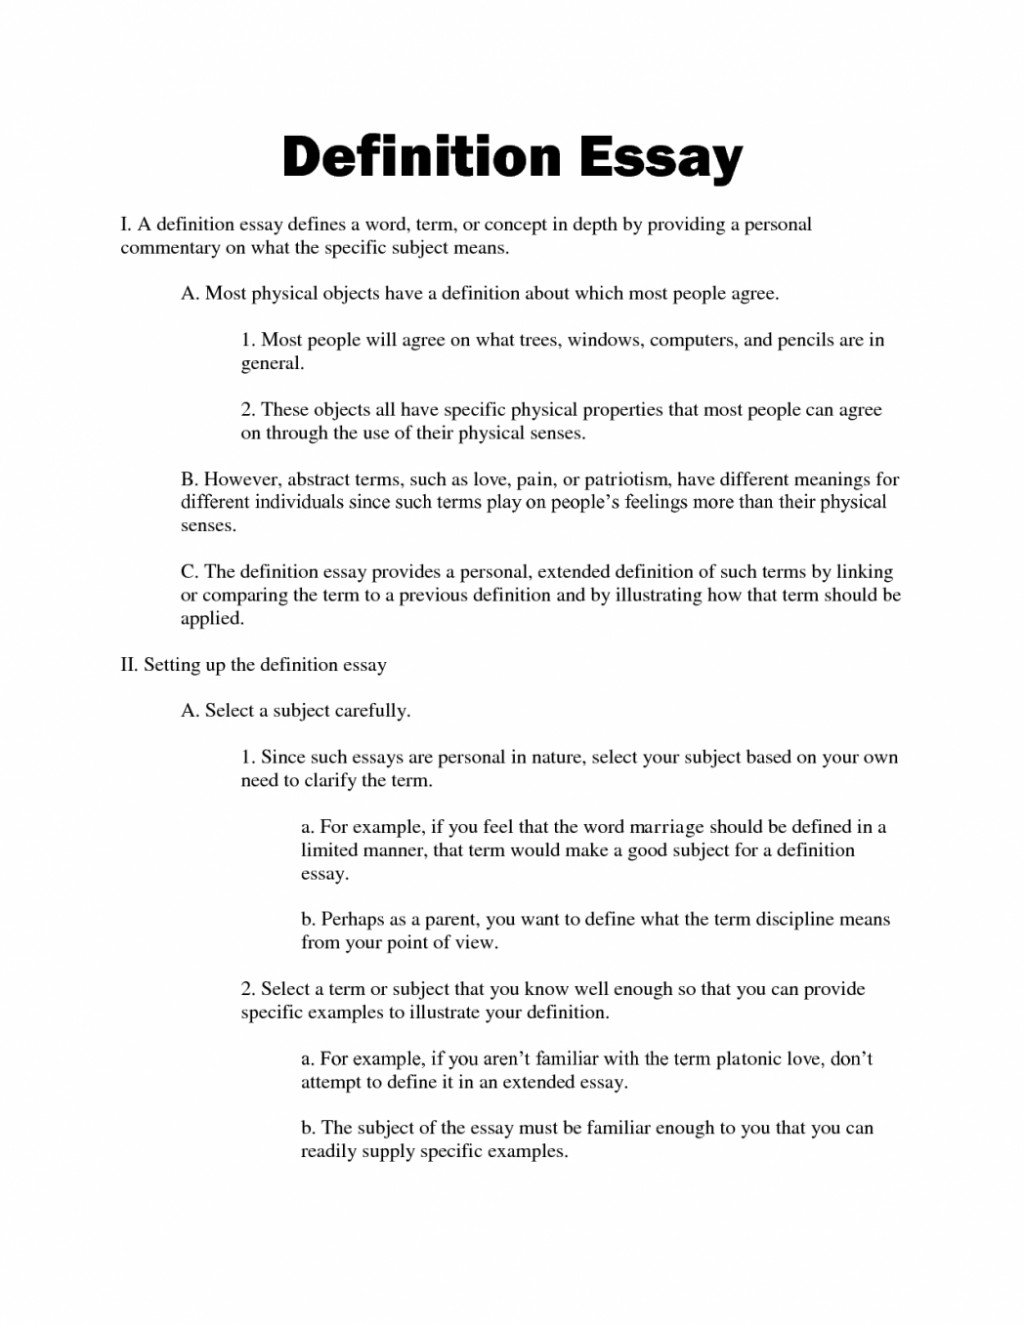 002 Topics For Definition Argument Essay List 1048x1356 Impressive Assignment Ideas Outline Large